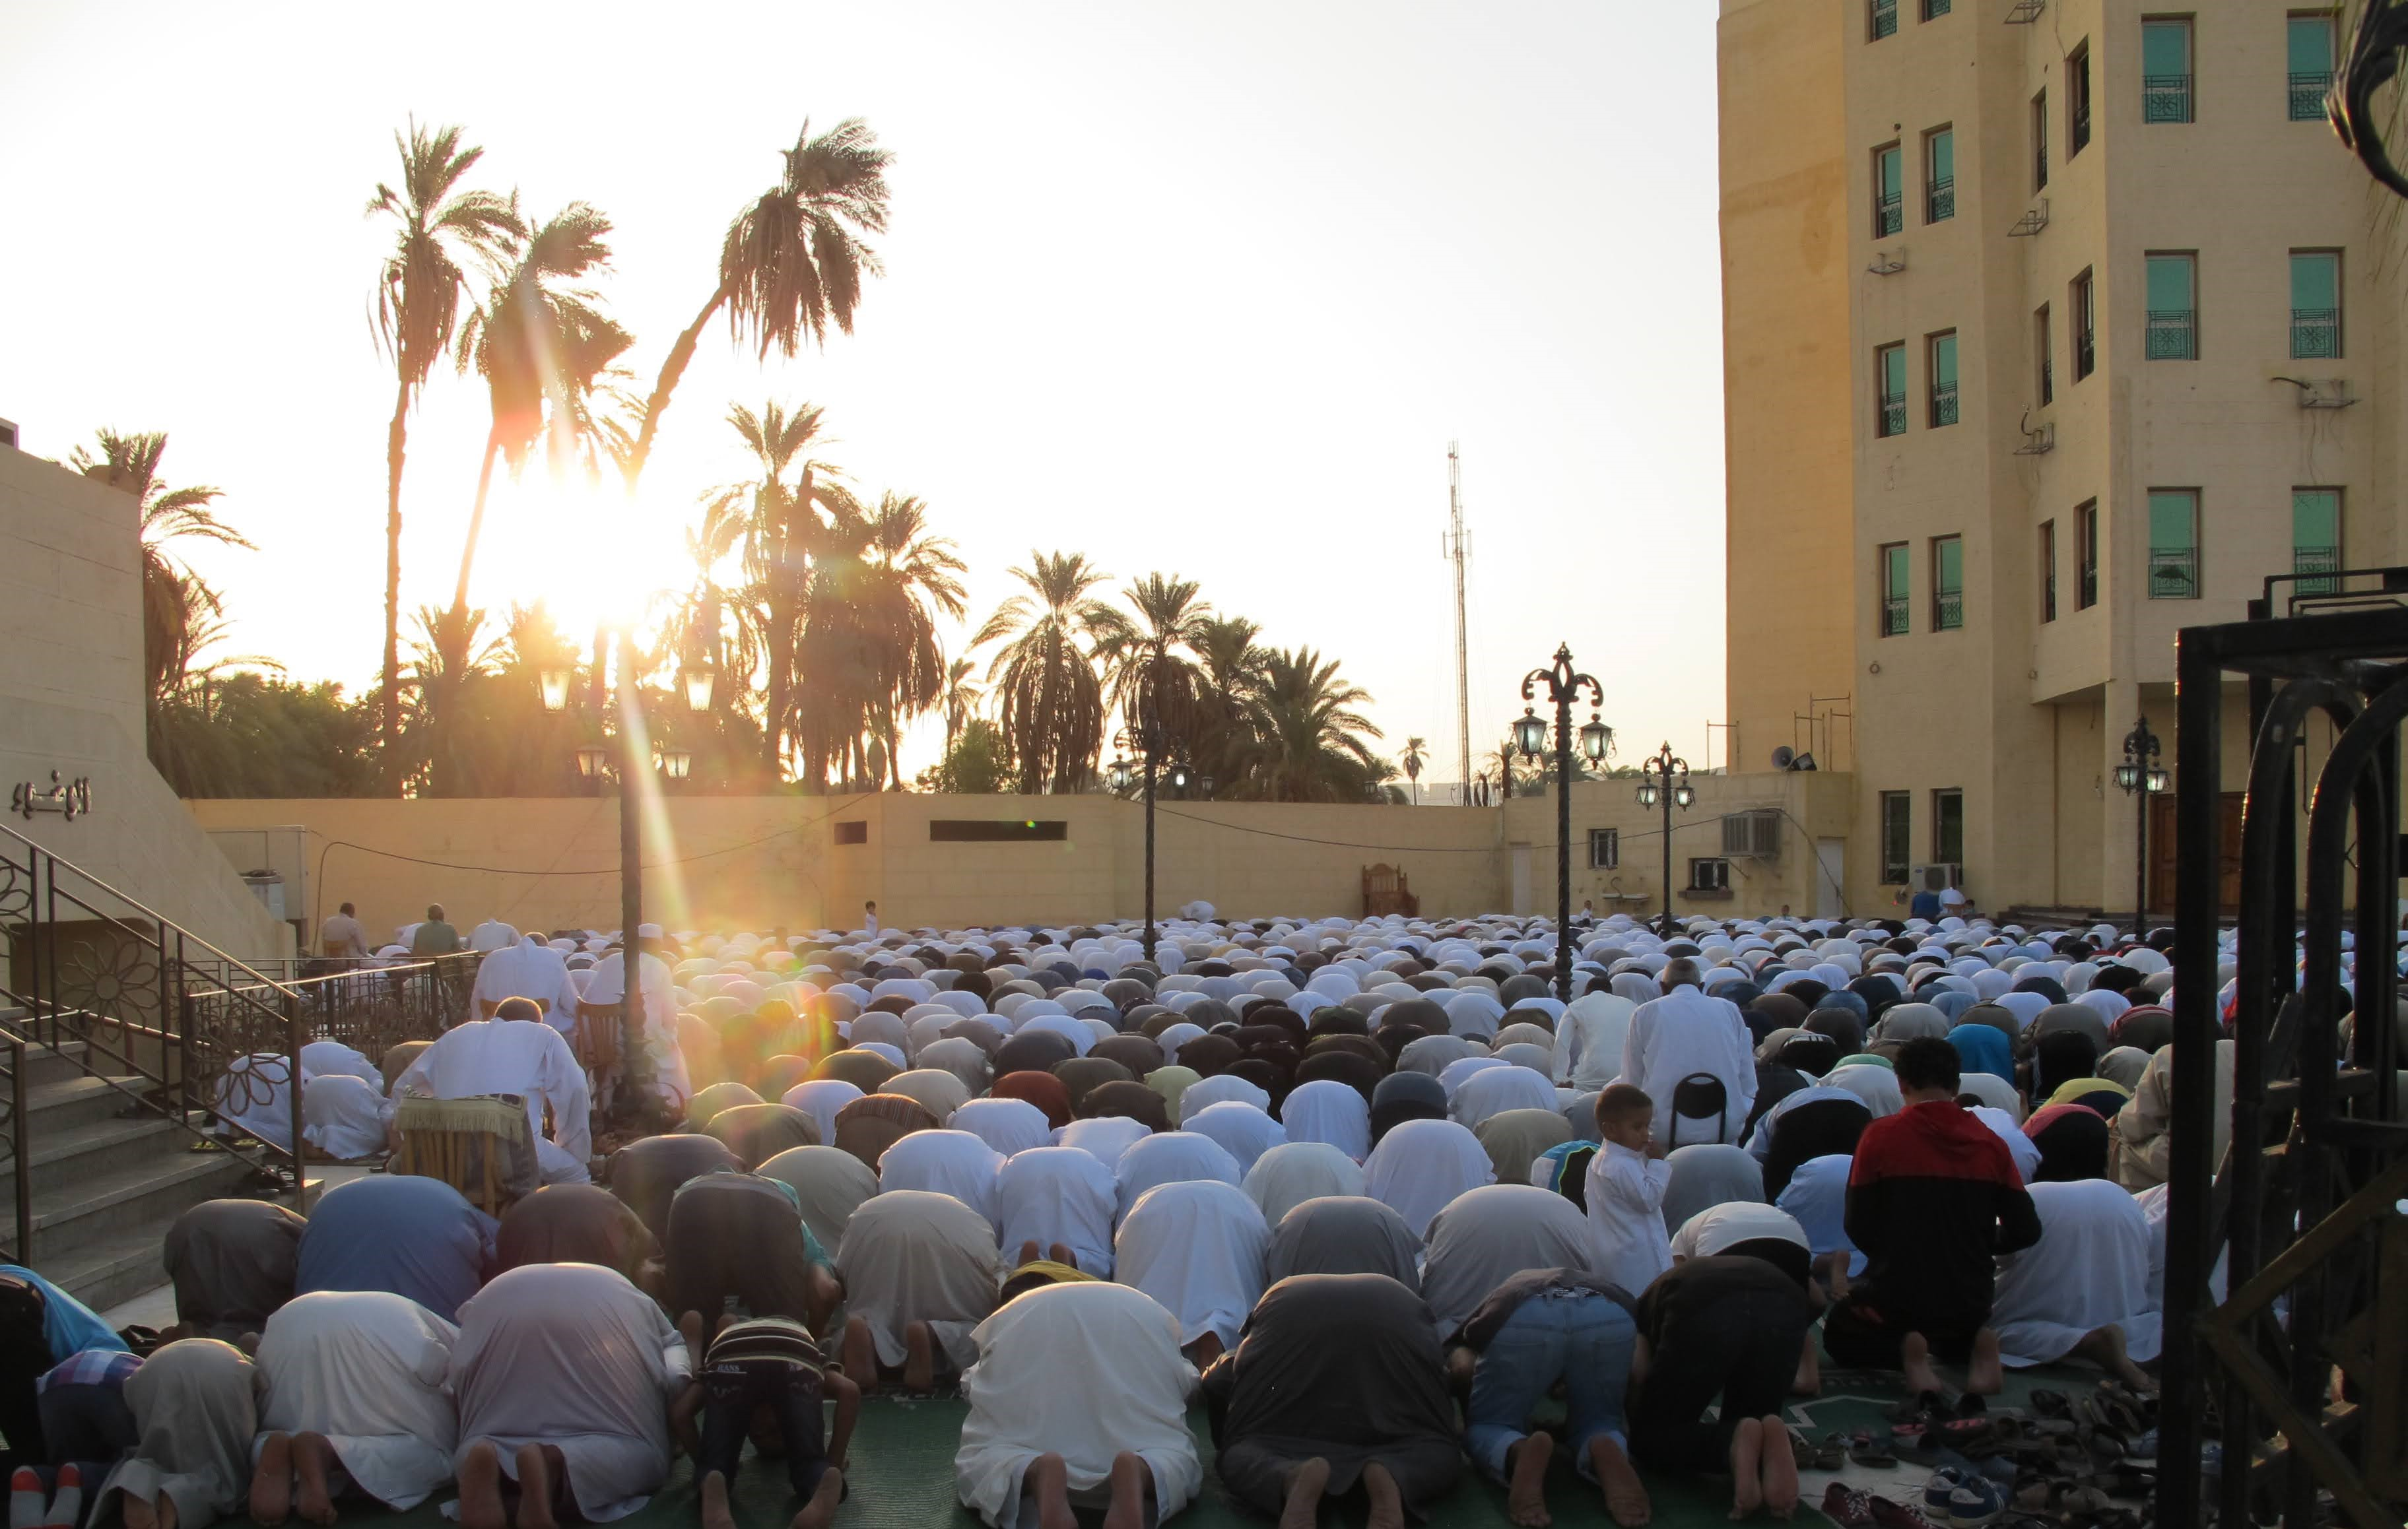 Men in prayer in the Middle East